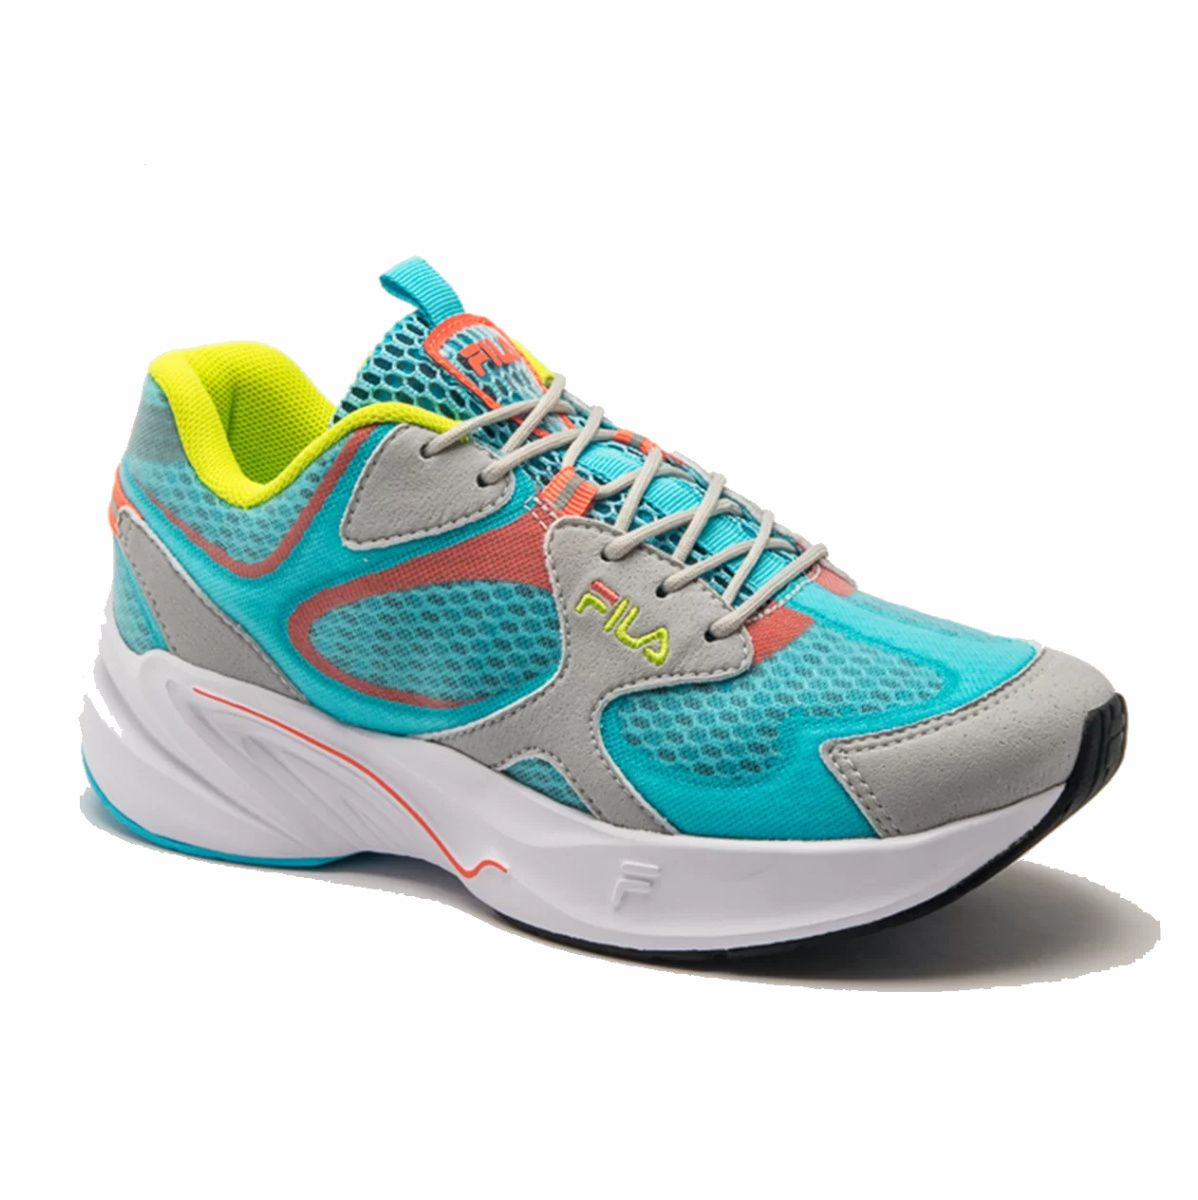 Tenis Fila Carrera Tech Feminino Training Running